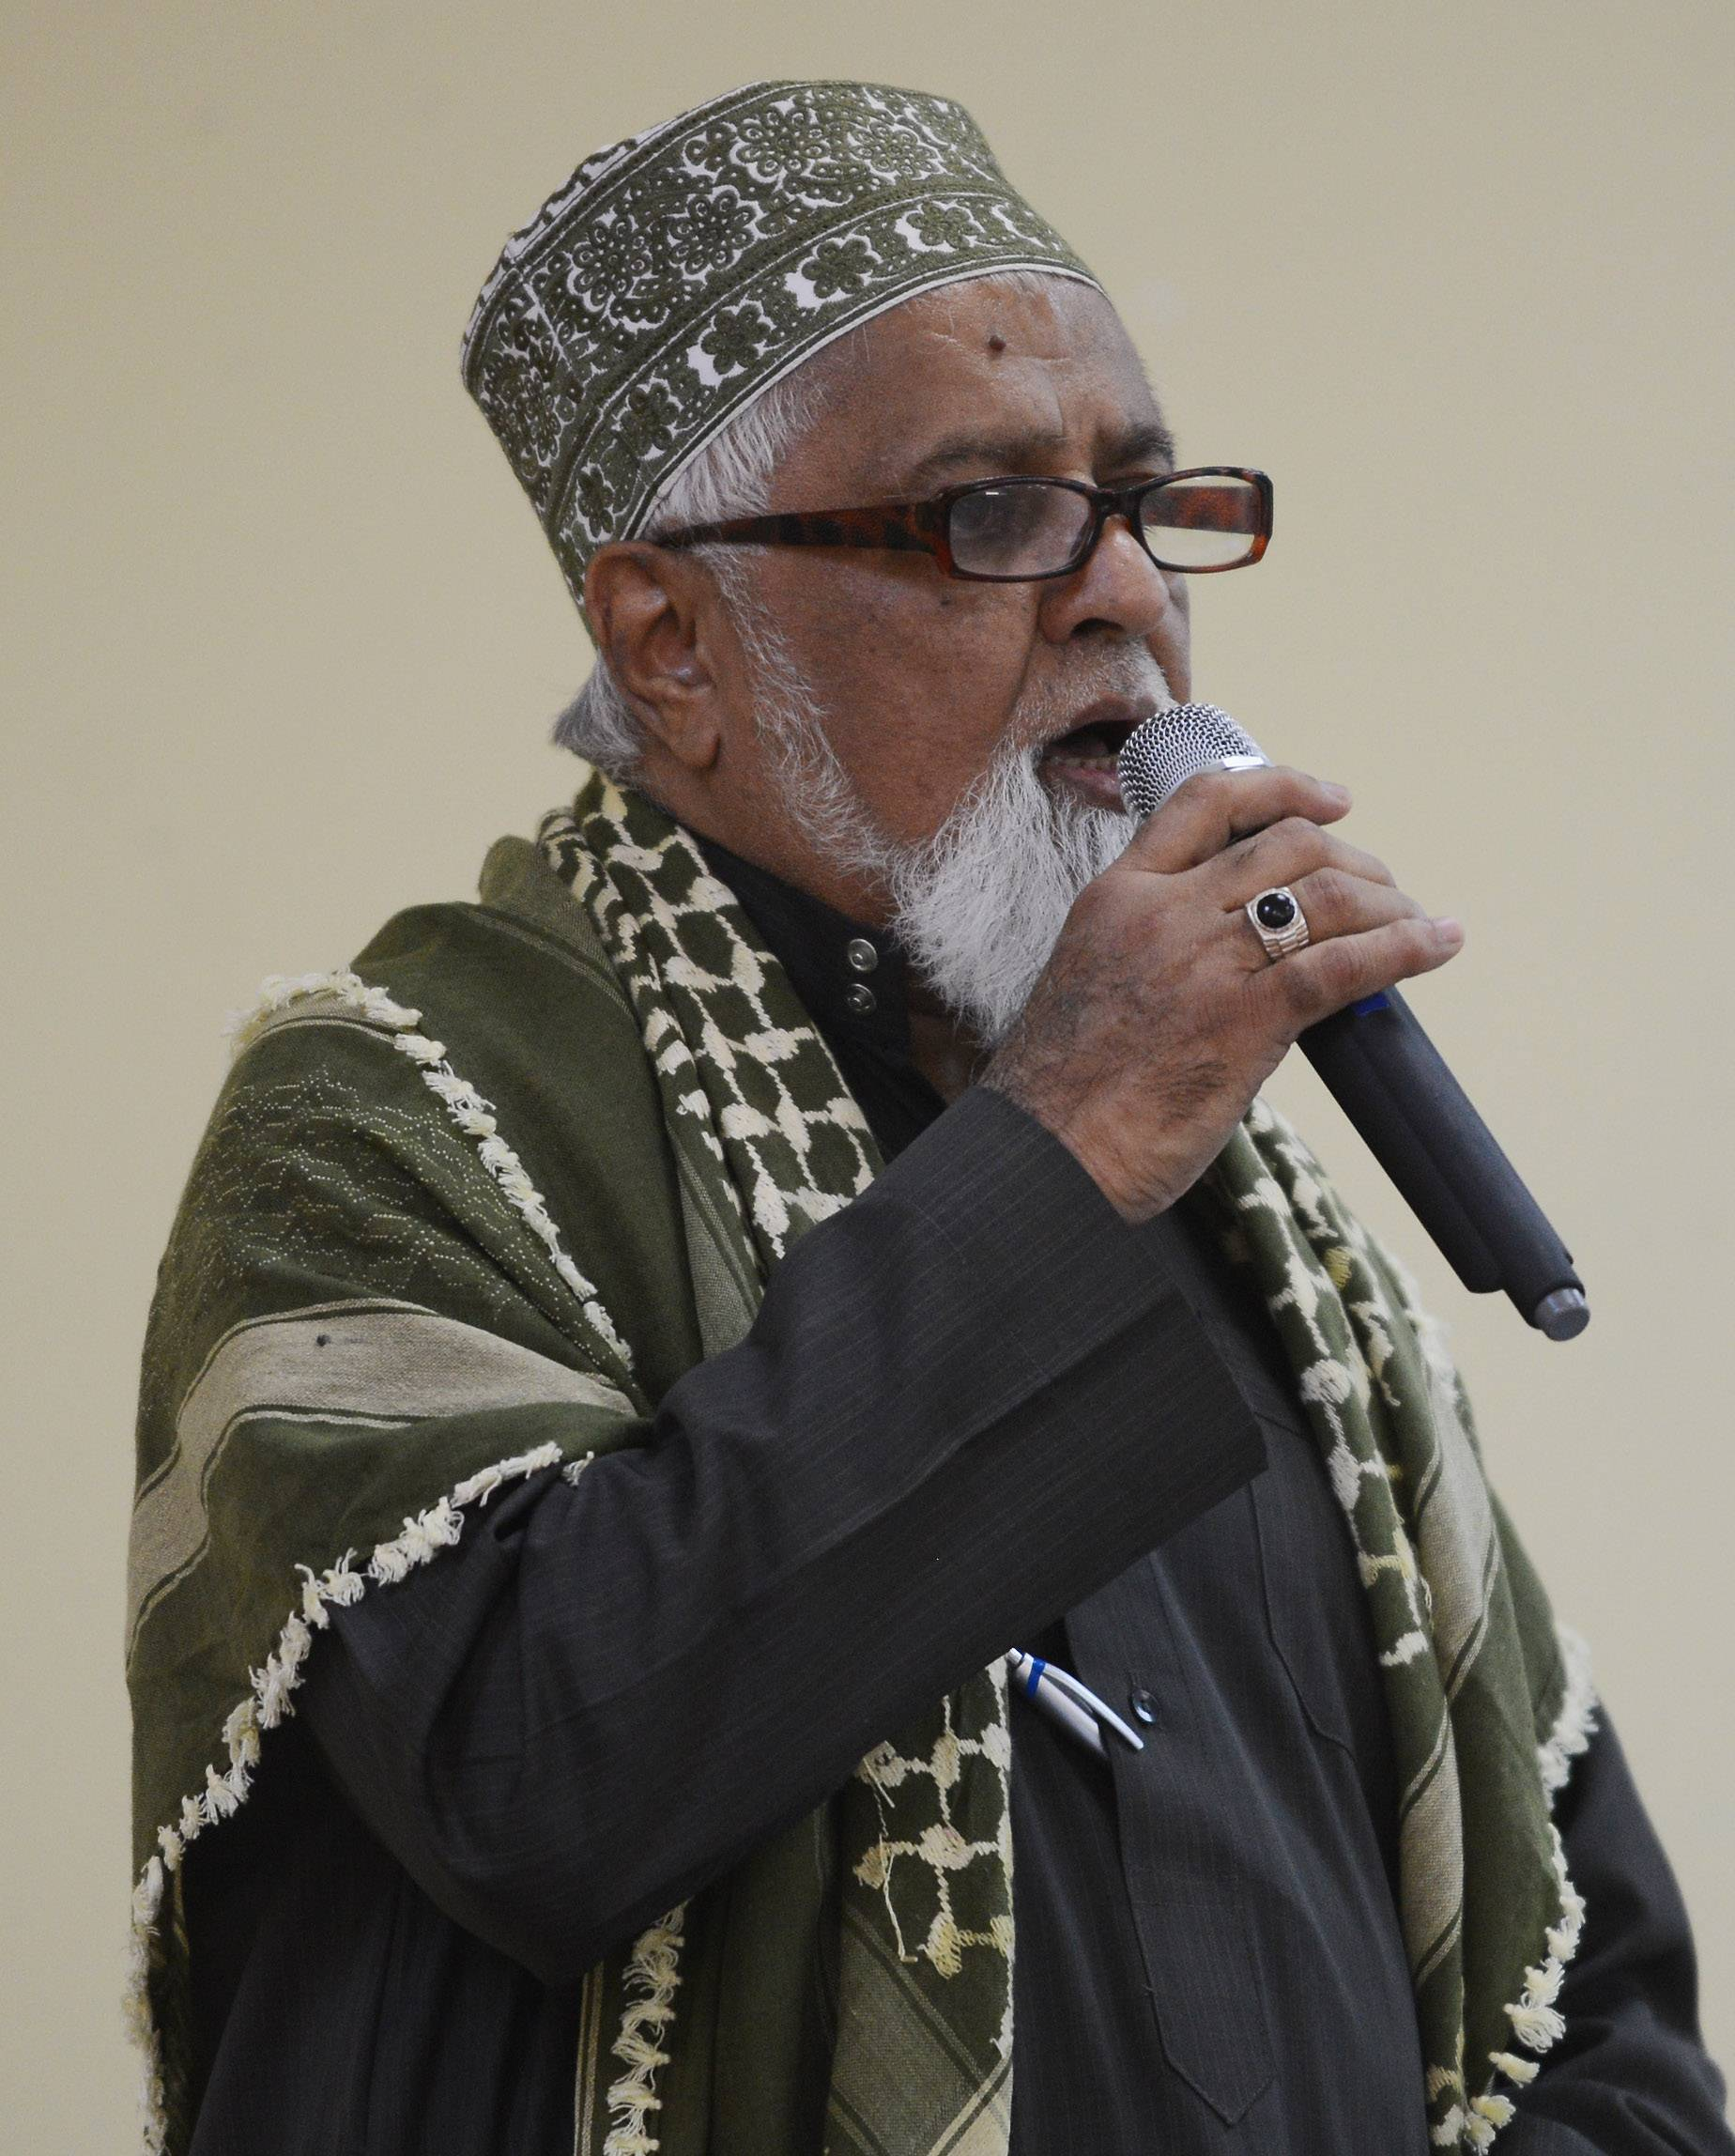 Dr. Ahmad Abdul Karim Jangda speaks during the annual interfaith observation of Ramadan fast-breaking dinner at the Masjid Al Huda mosque in Schaumburg Wednesday.